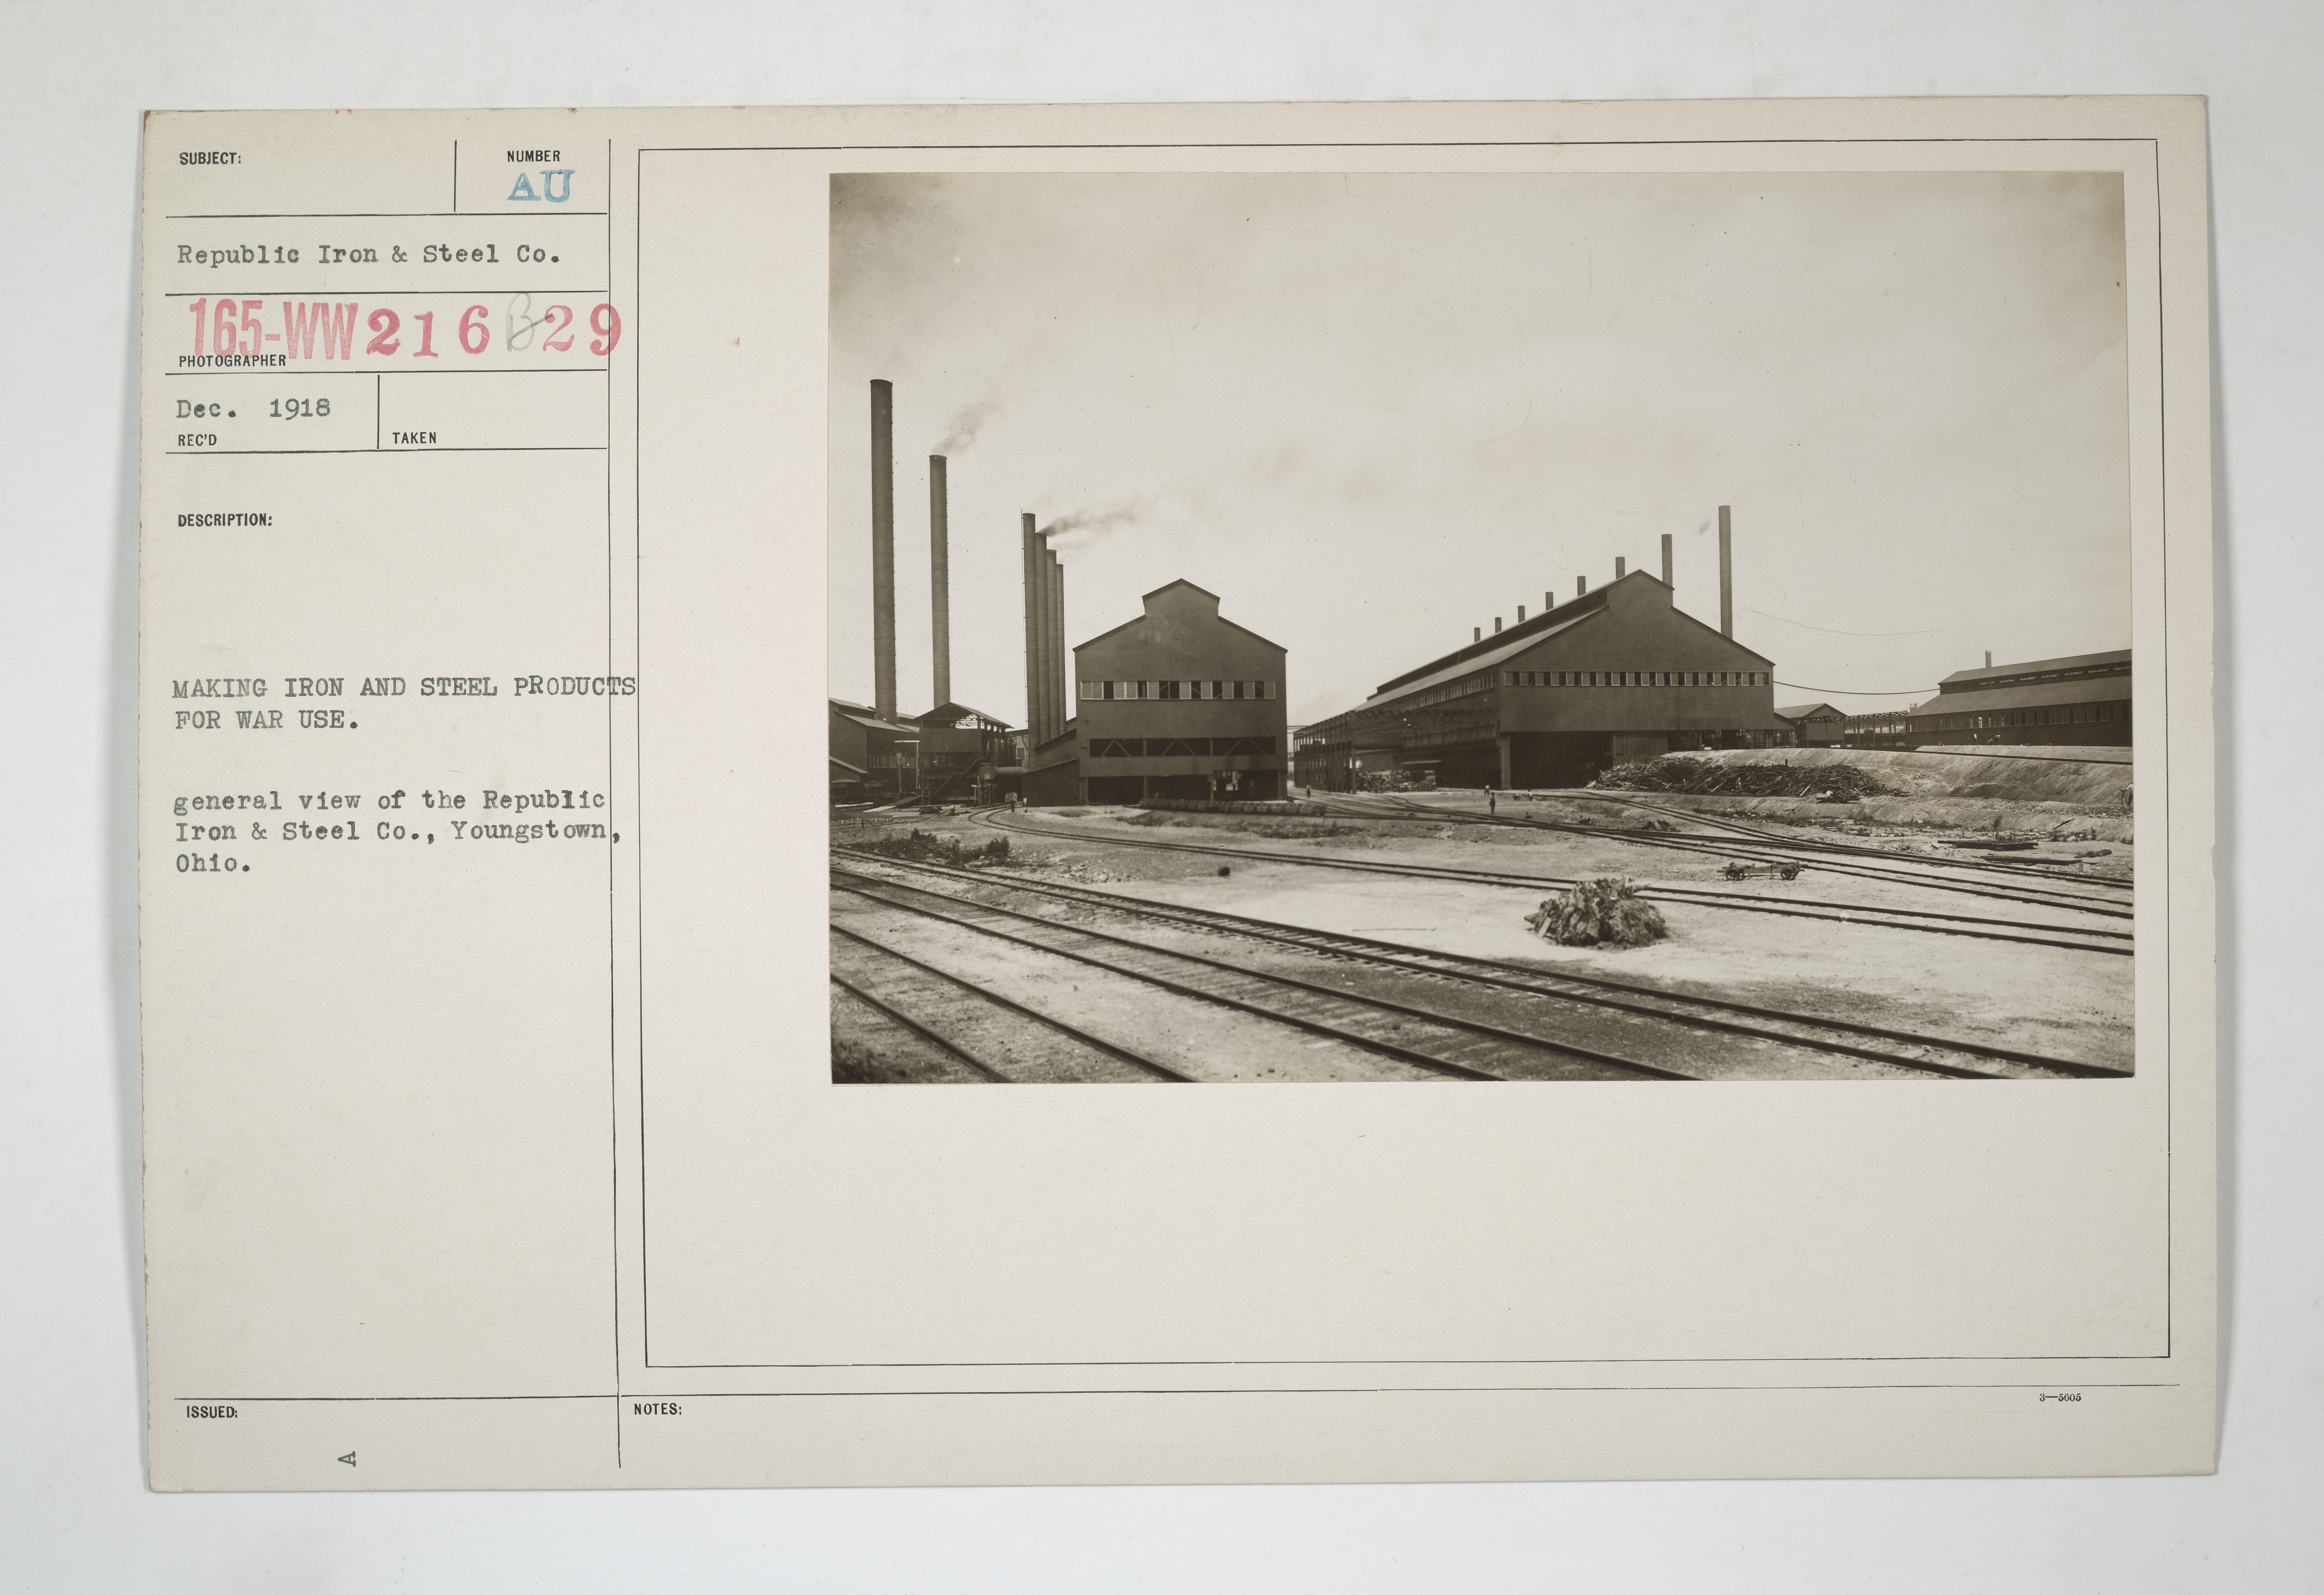 Industry building railroad and other steel products